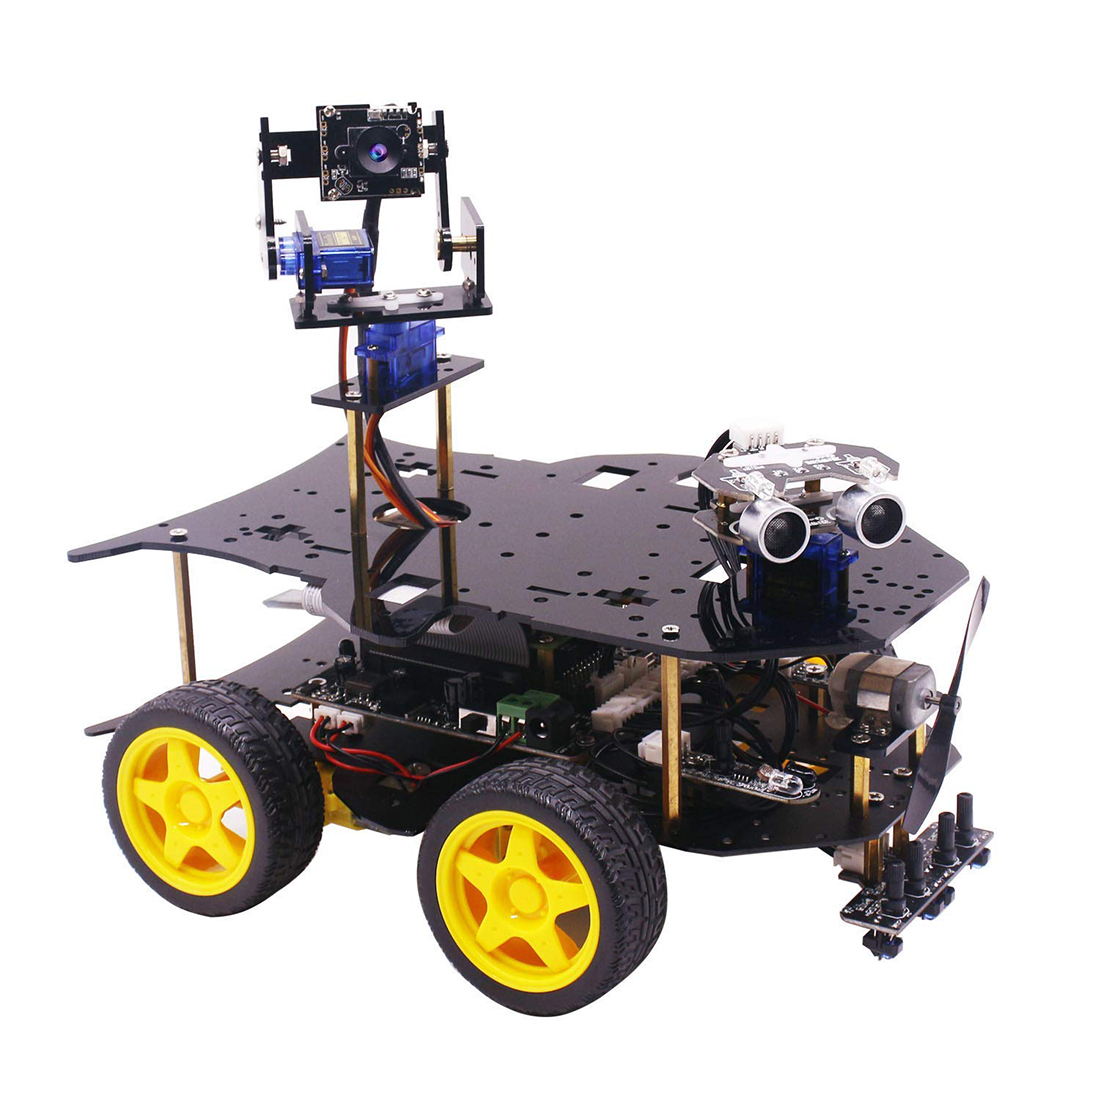 Ultimate Starter Kit For Raspberry Pi 3 B+ HD Camera Programmable Smart Robot Car With 4WD Electronics DIY Stem Toy For Teens